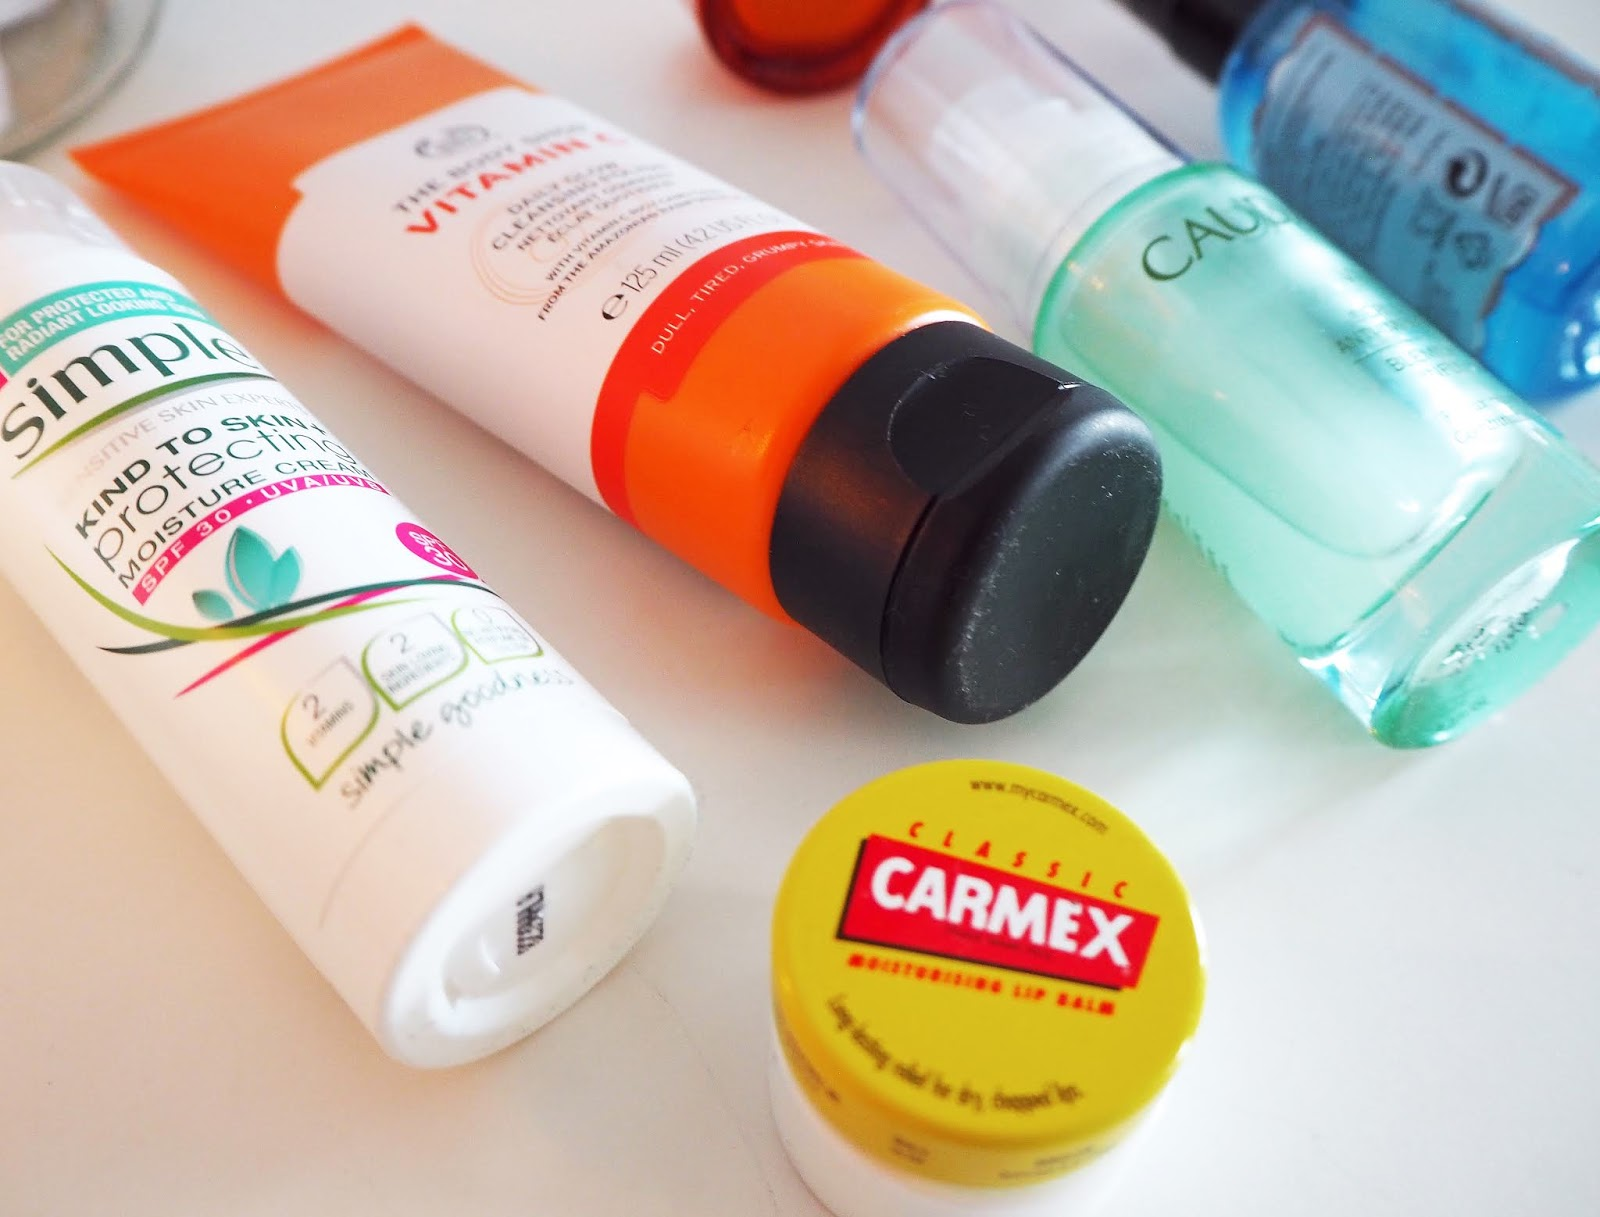 Morning Skincare Routine, Origins, The Body Shop, Simple, Caudalie, Carmex